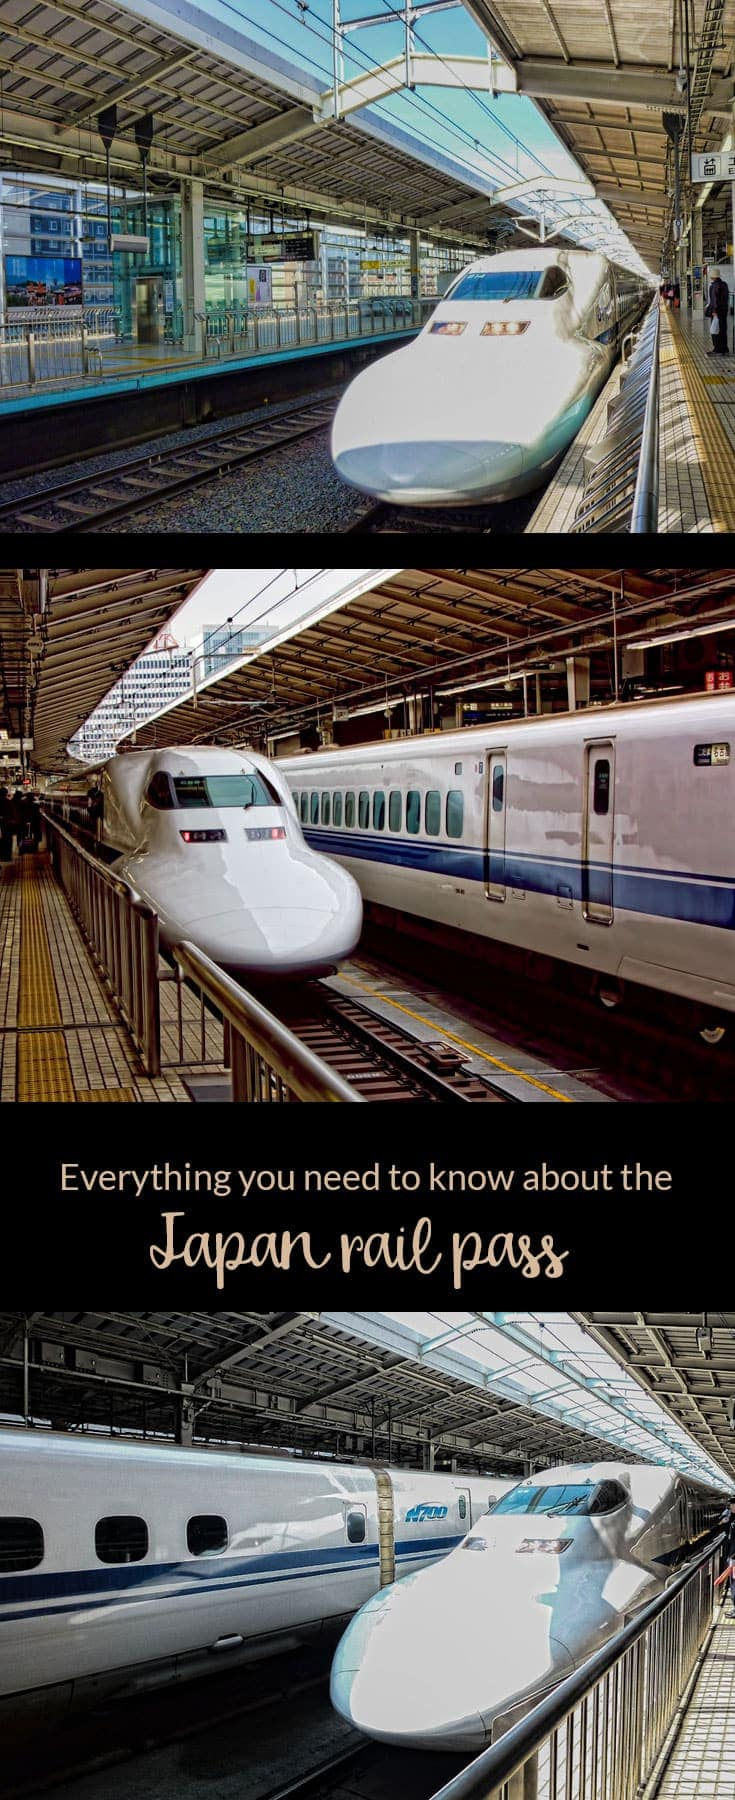 The Japan Rail Pass - All your questions answered